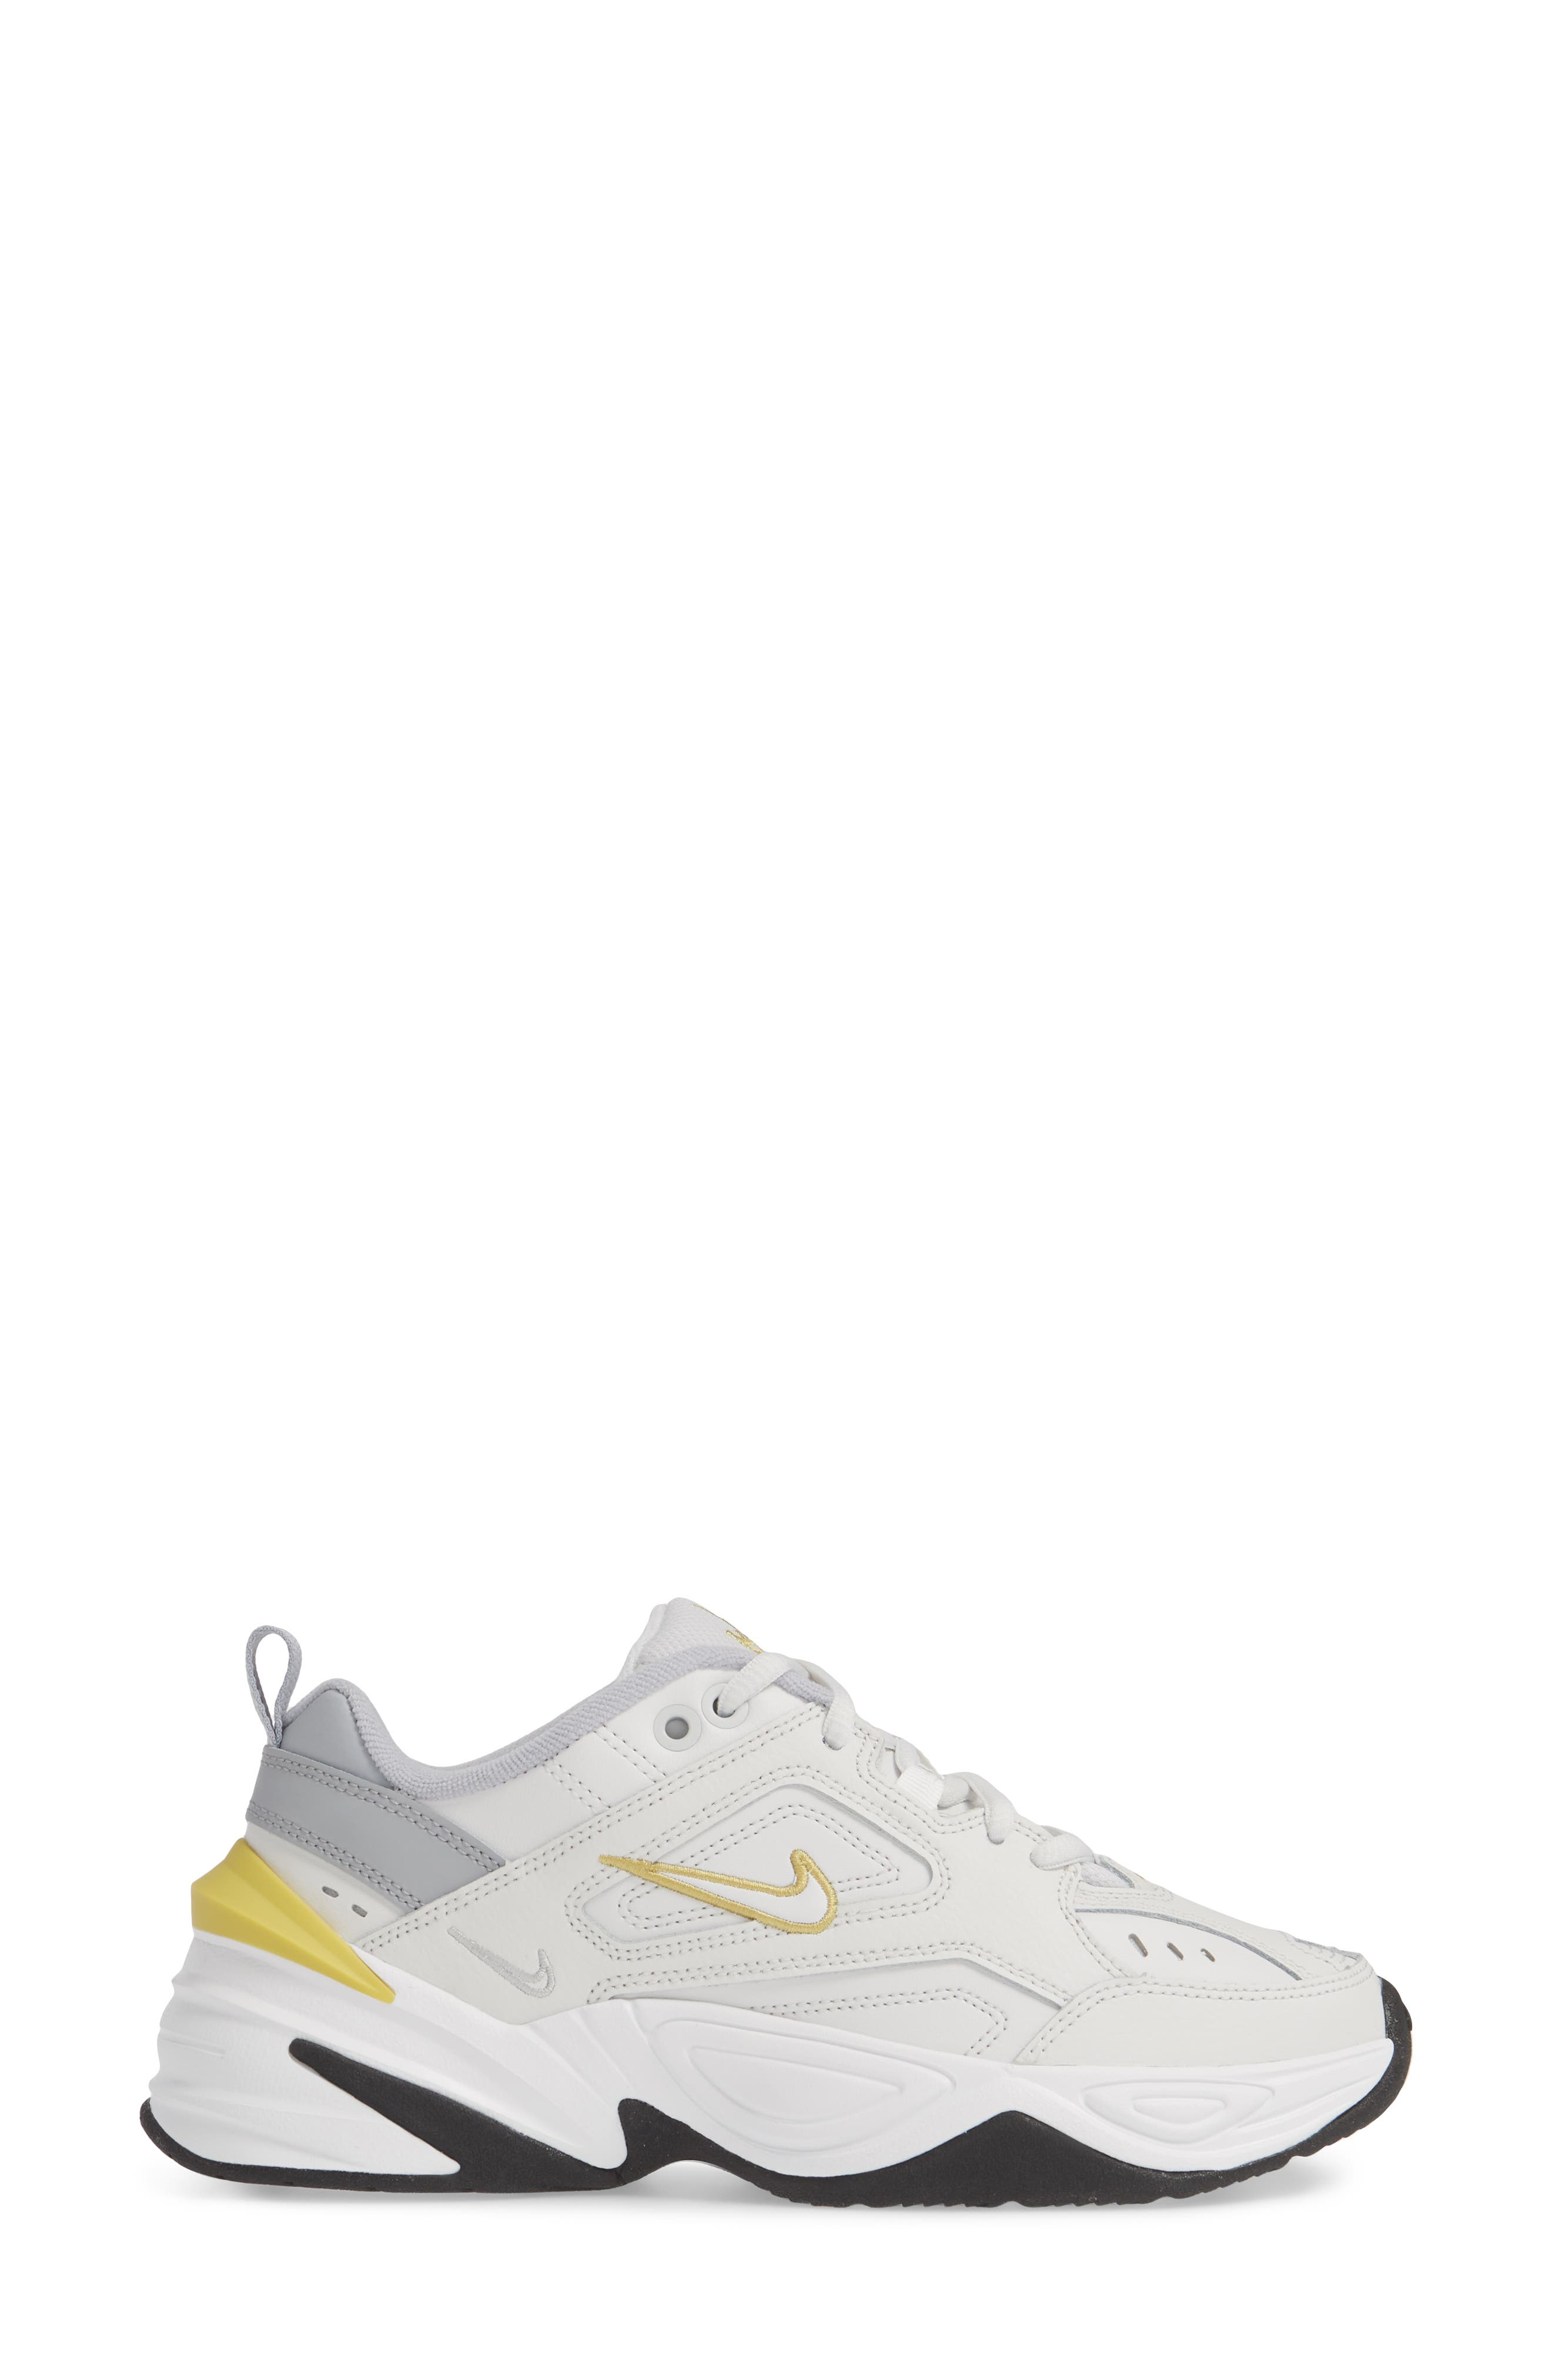 NIKE,                             M2K Tekno Sneaker,                             Alternate thumbnail 3, color,                             PLATINUM TINT/ CELERY/ GREY